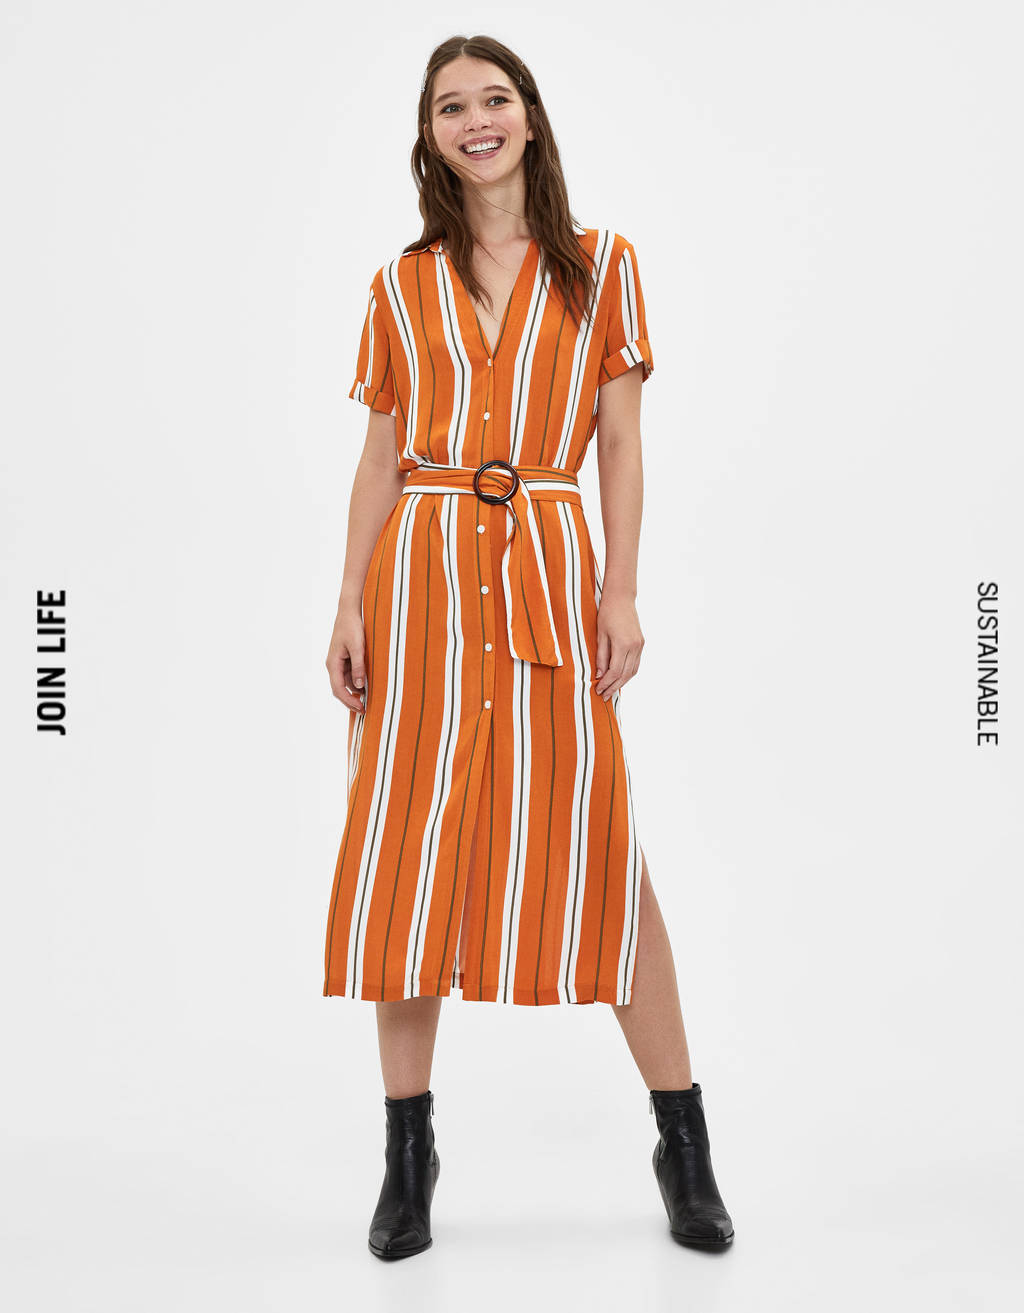 huge discount d42d1 20d42 Vestiti donna - Autunno 2019 | Bershka